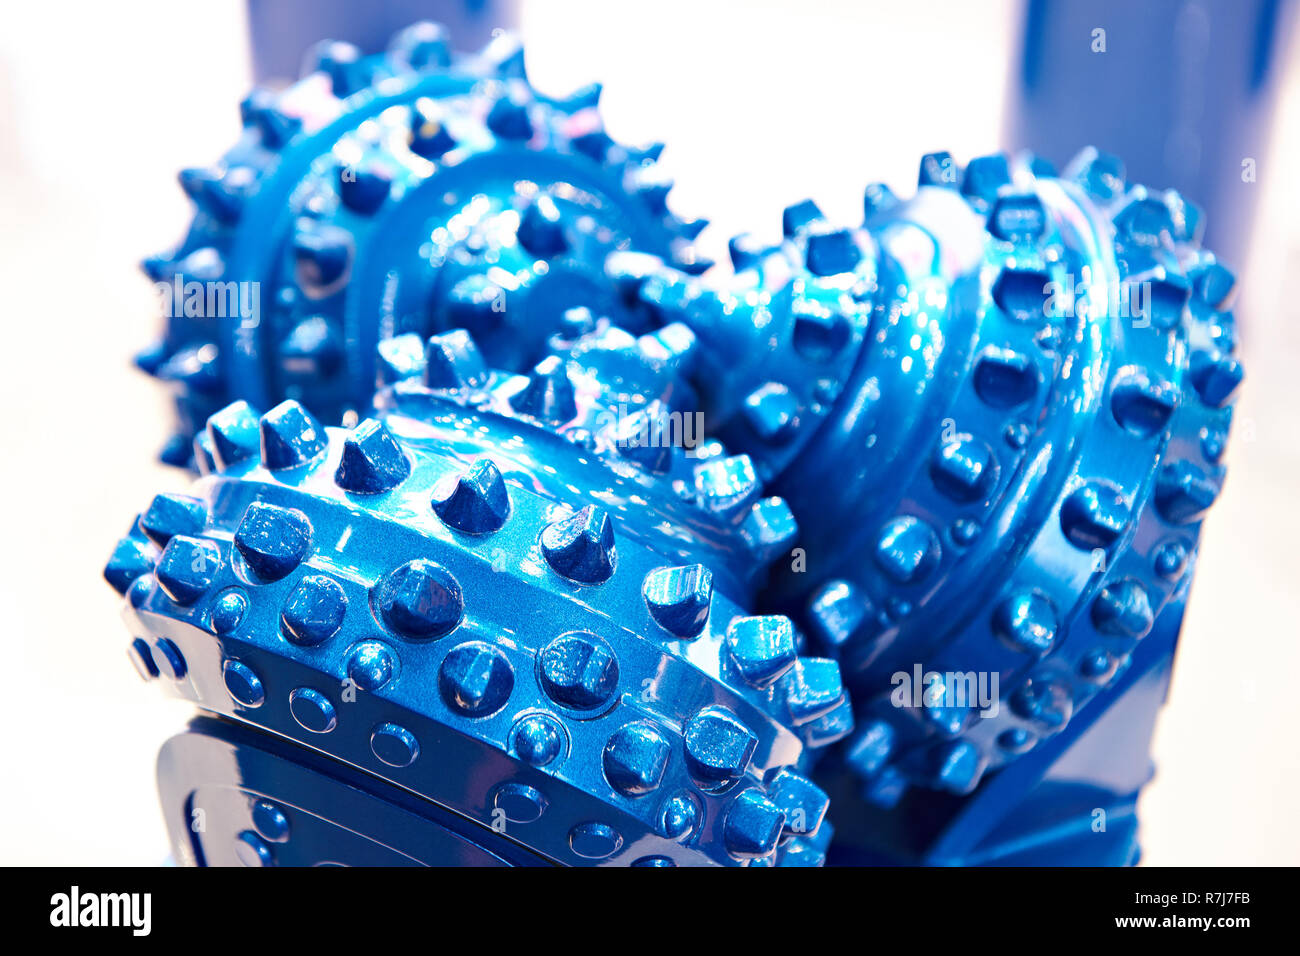 Blue drilling head for oil production at the exhibition - Stock Image